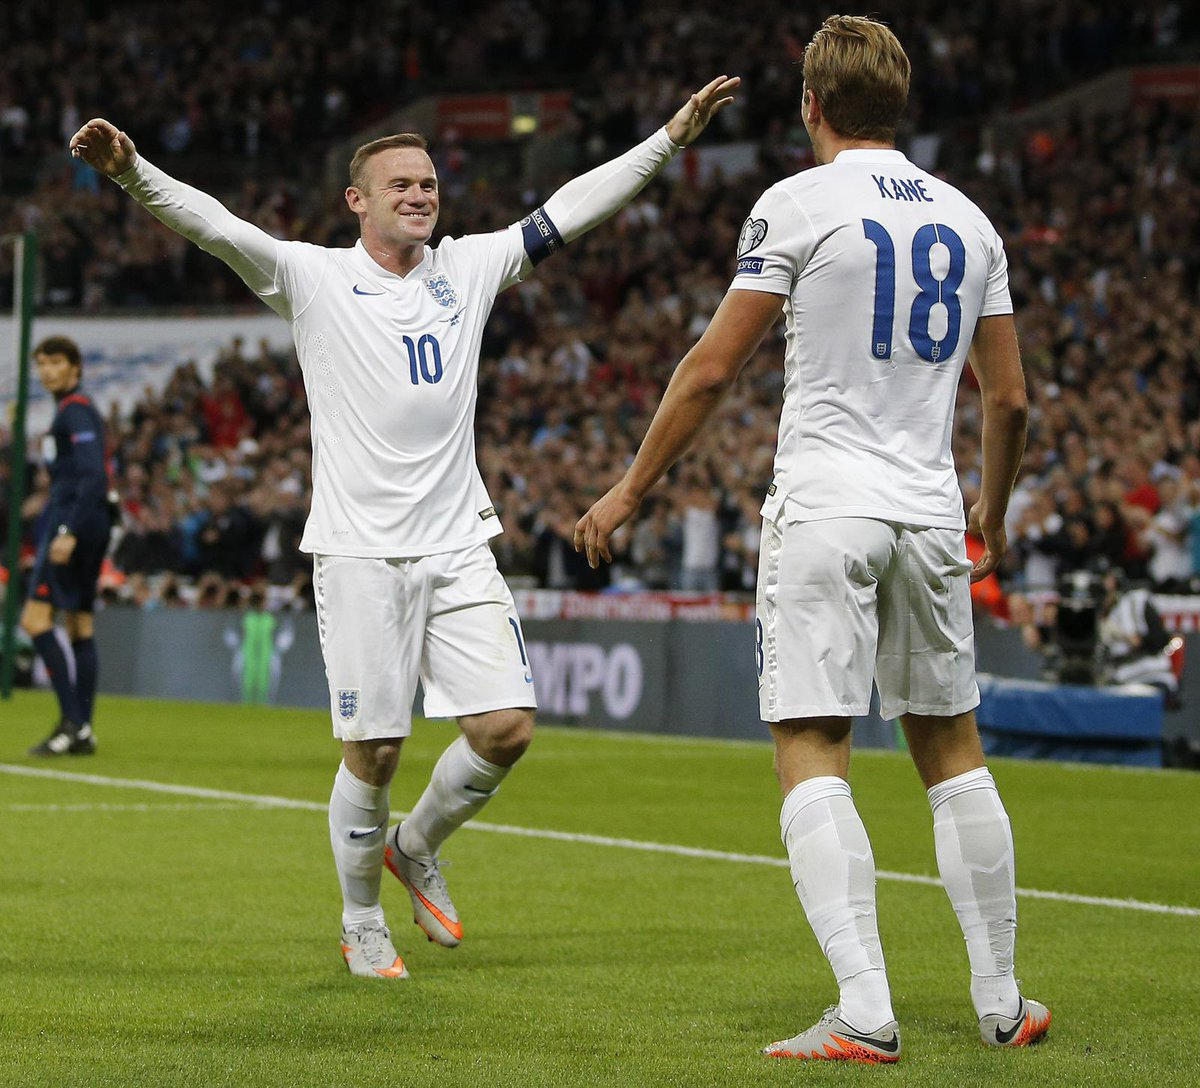 Congrats on an amazing career @WayneRooney. Been a pleasure to have played alongside you and learnt from you in an @England shirt. All the best in management. 🦁🦁🦁